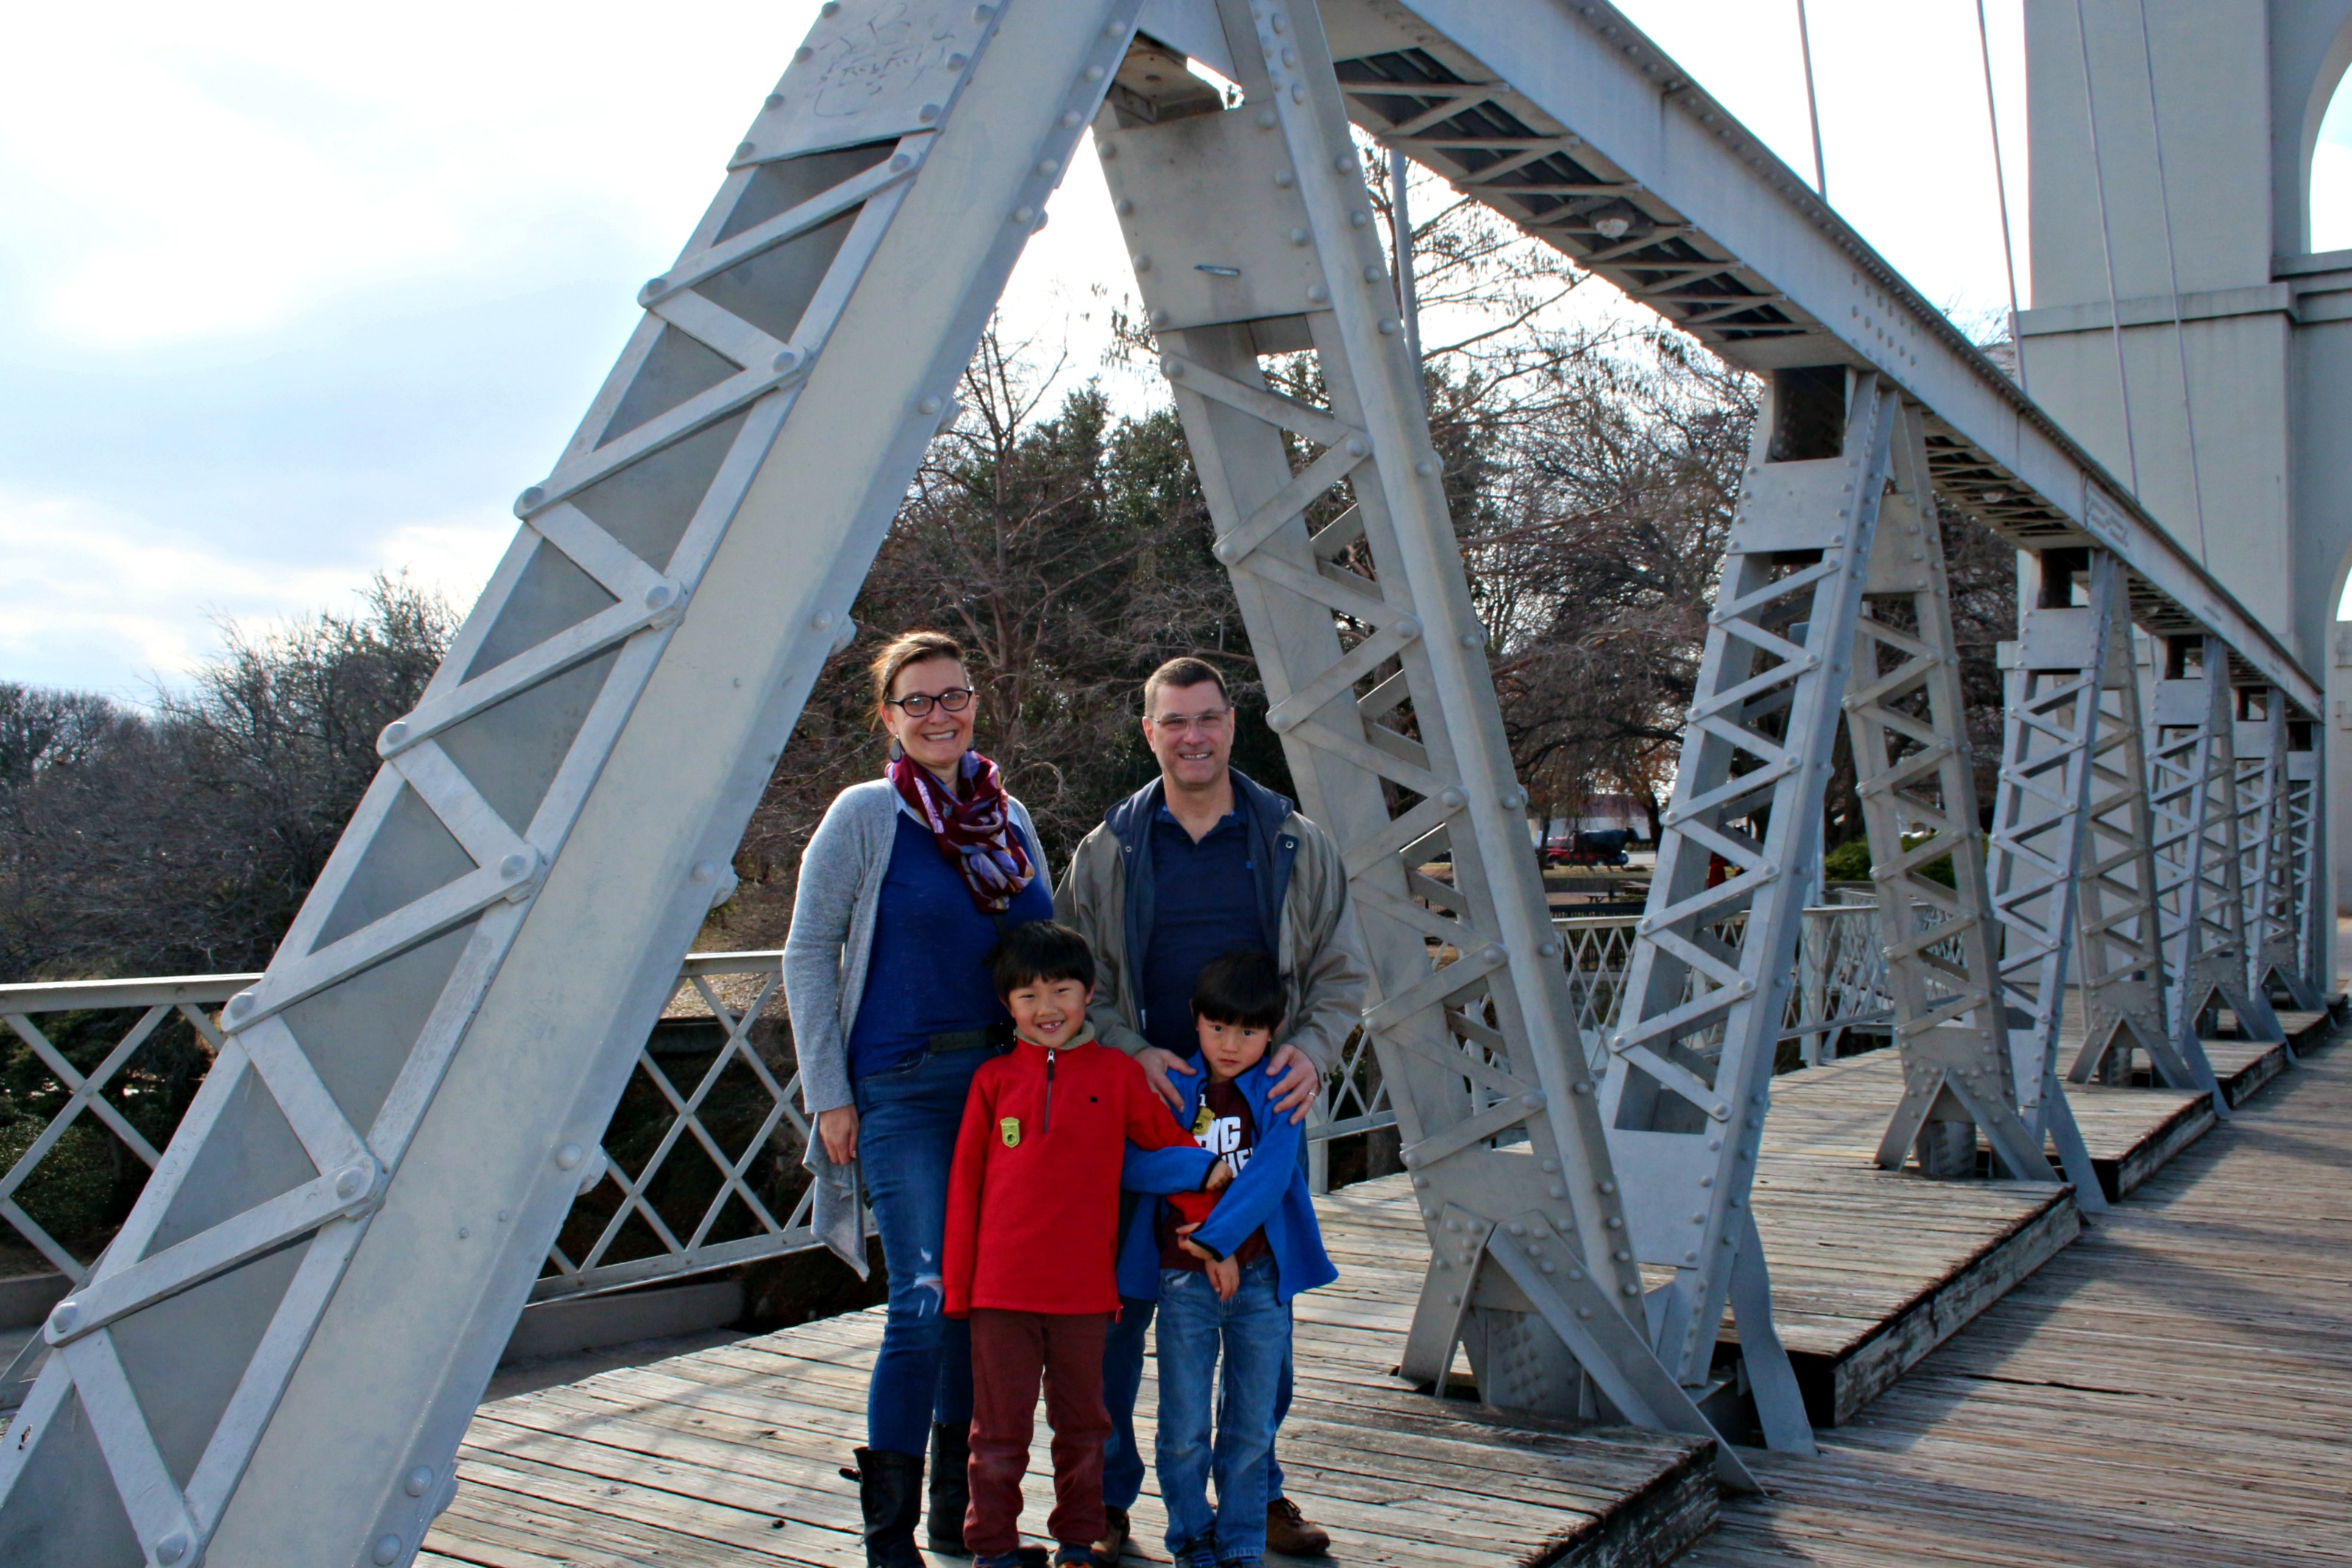 If you're looking for things to do in Waco, don't pass up the photo opps to be had at the Waco Suspension Bridge